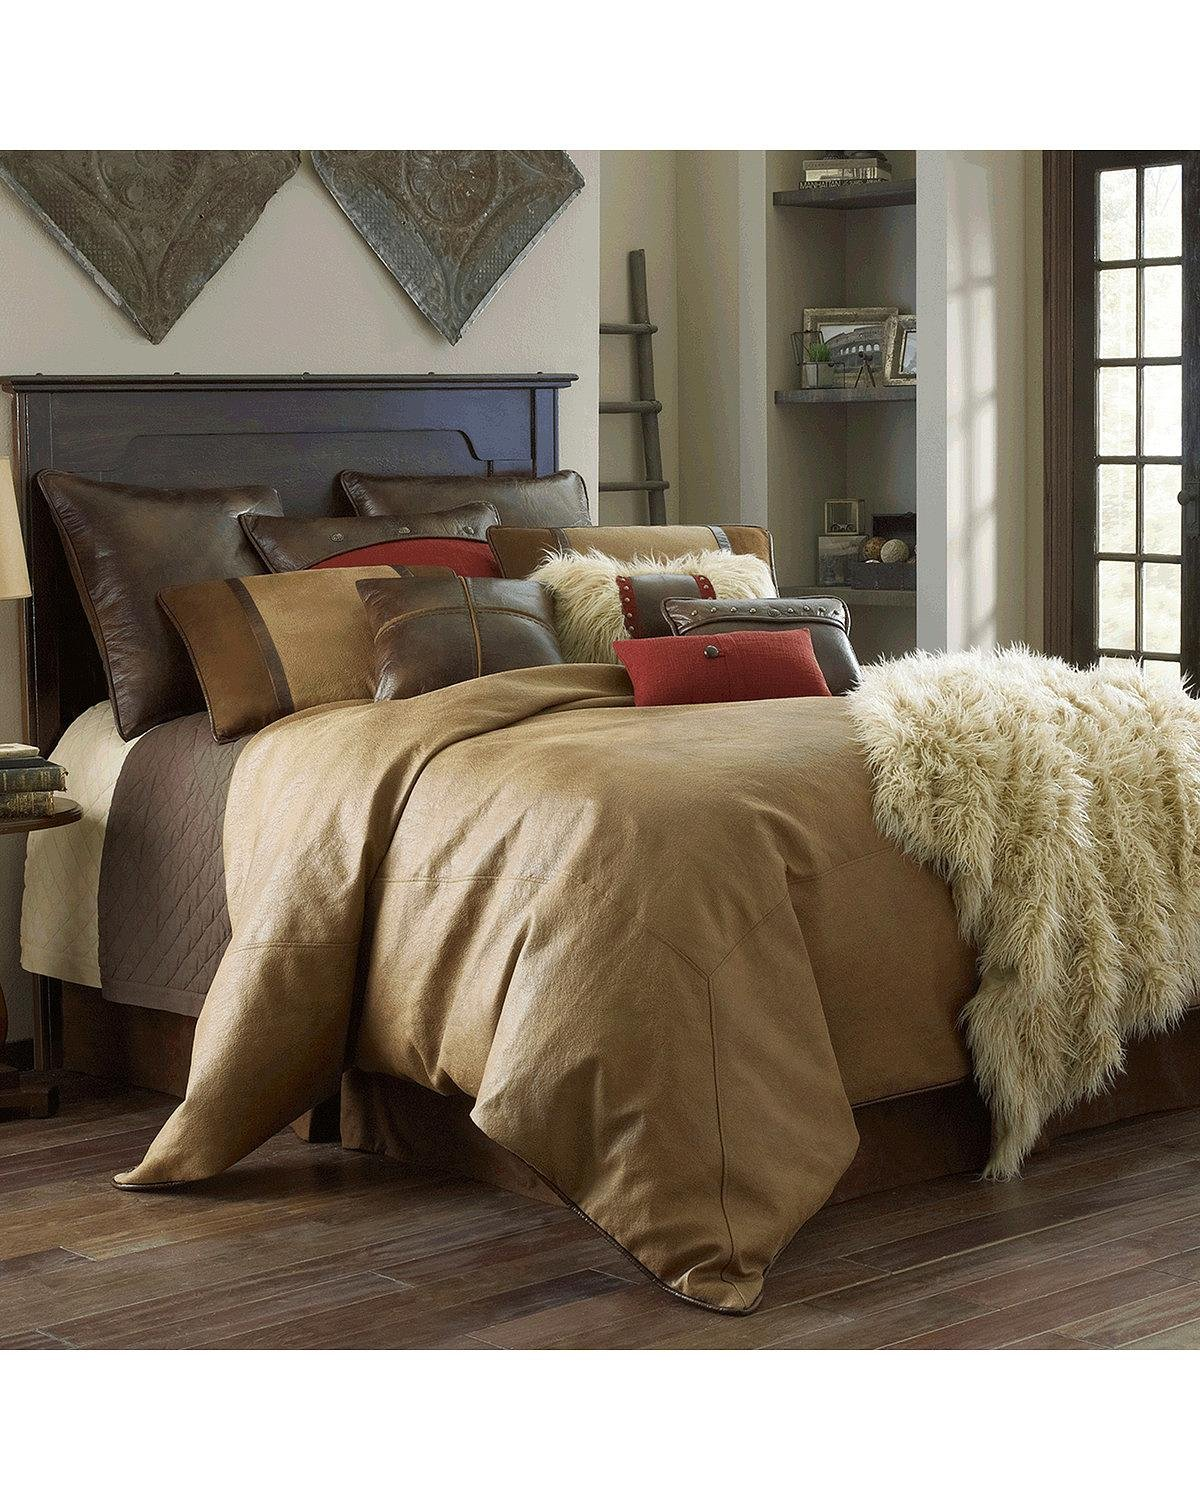 CDM product Hiend Accents Unisex Brighton Super King 4-Piece Bedding Set Tan One Size small thumbnail image